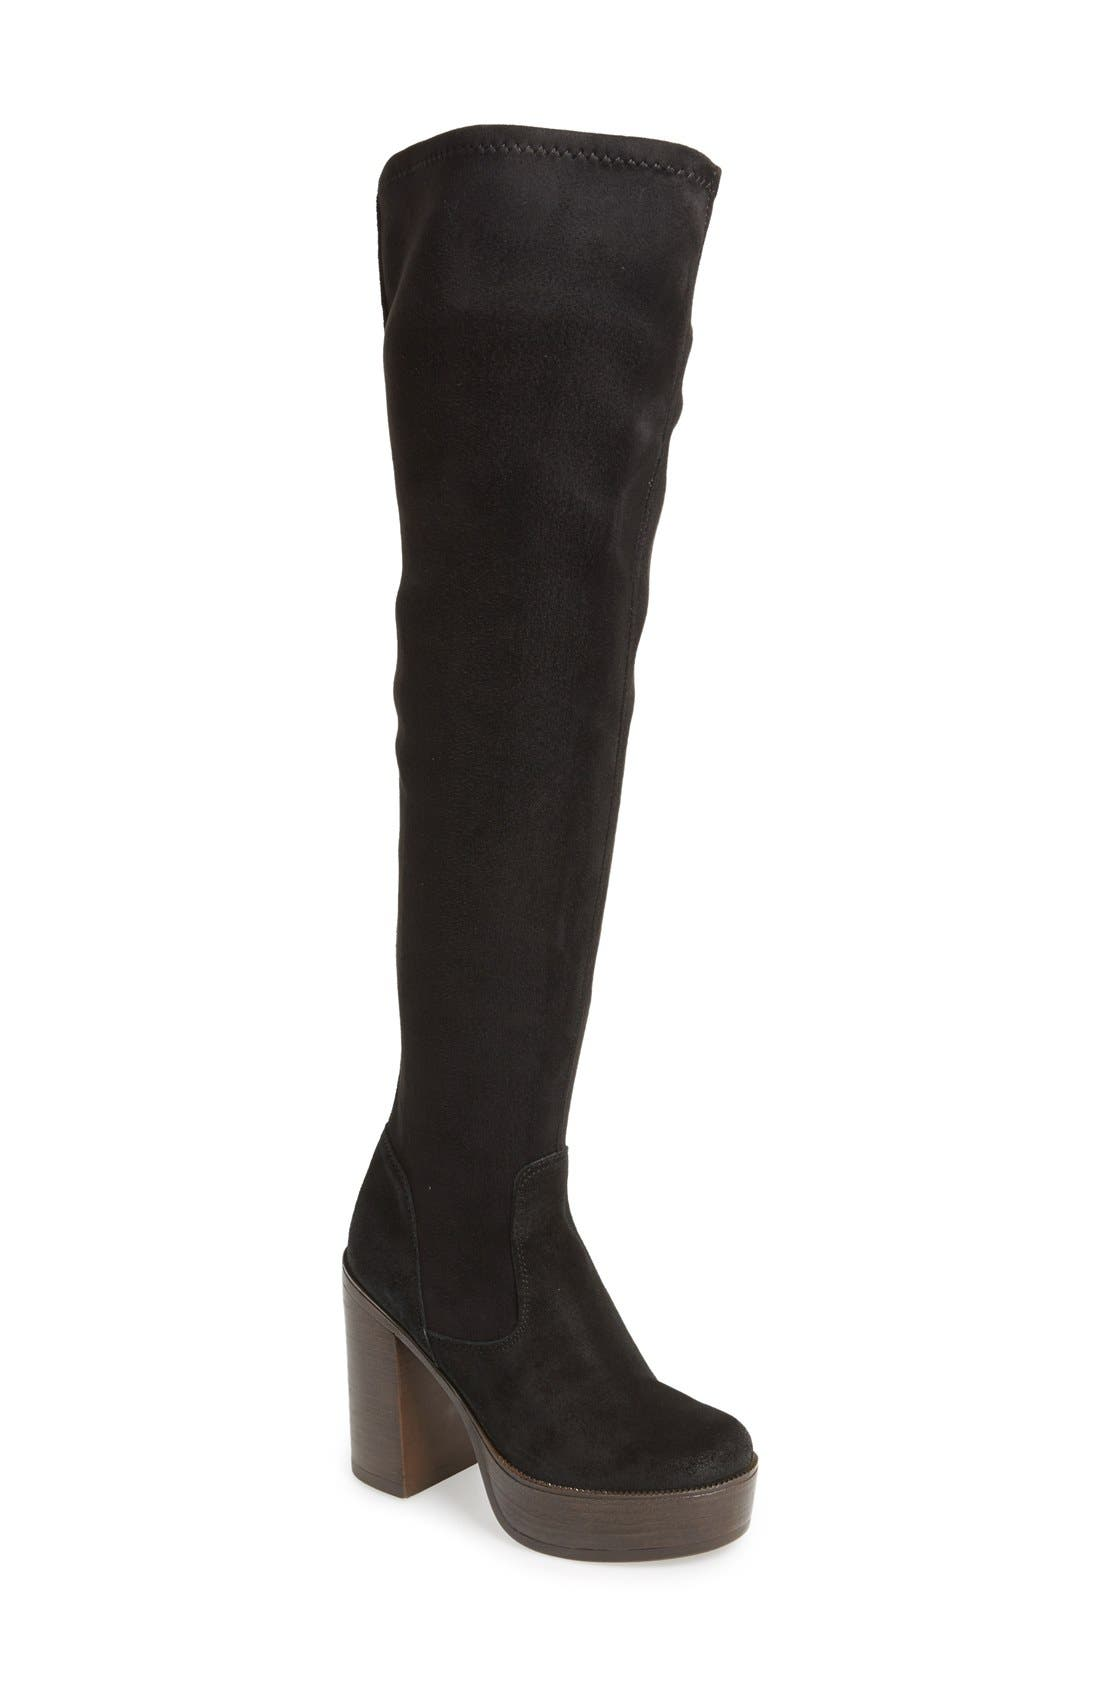 Alternate Image 1 Selected - Topshop'Buddy '70s' Over the Knee Boot (Women)